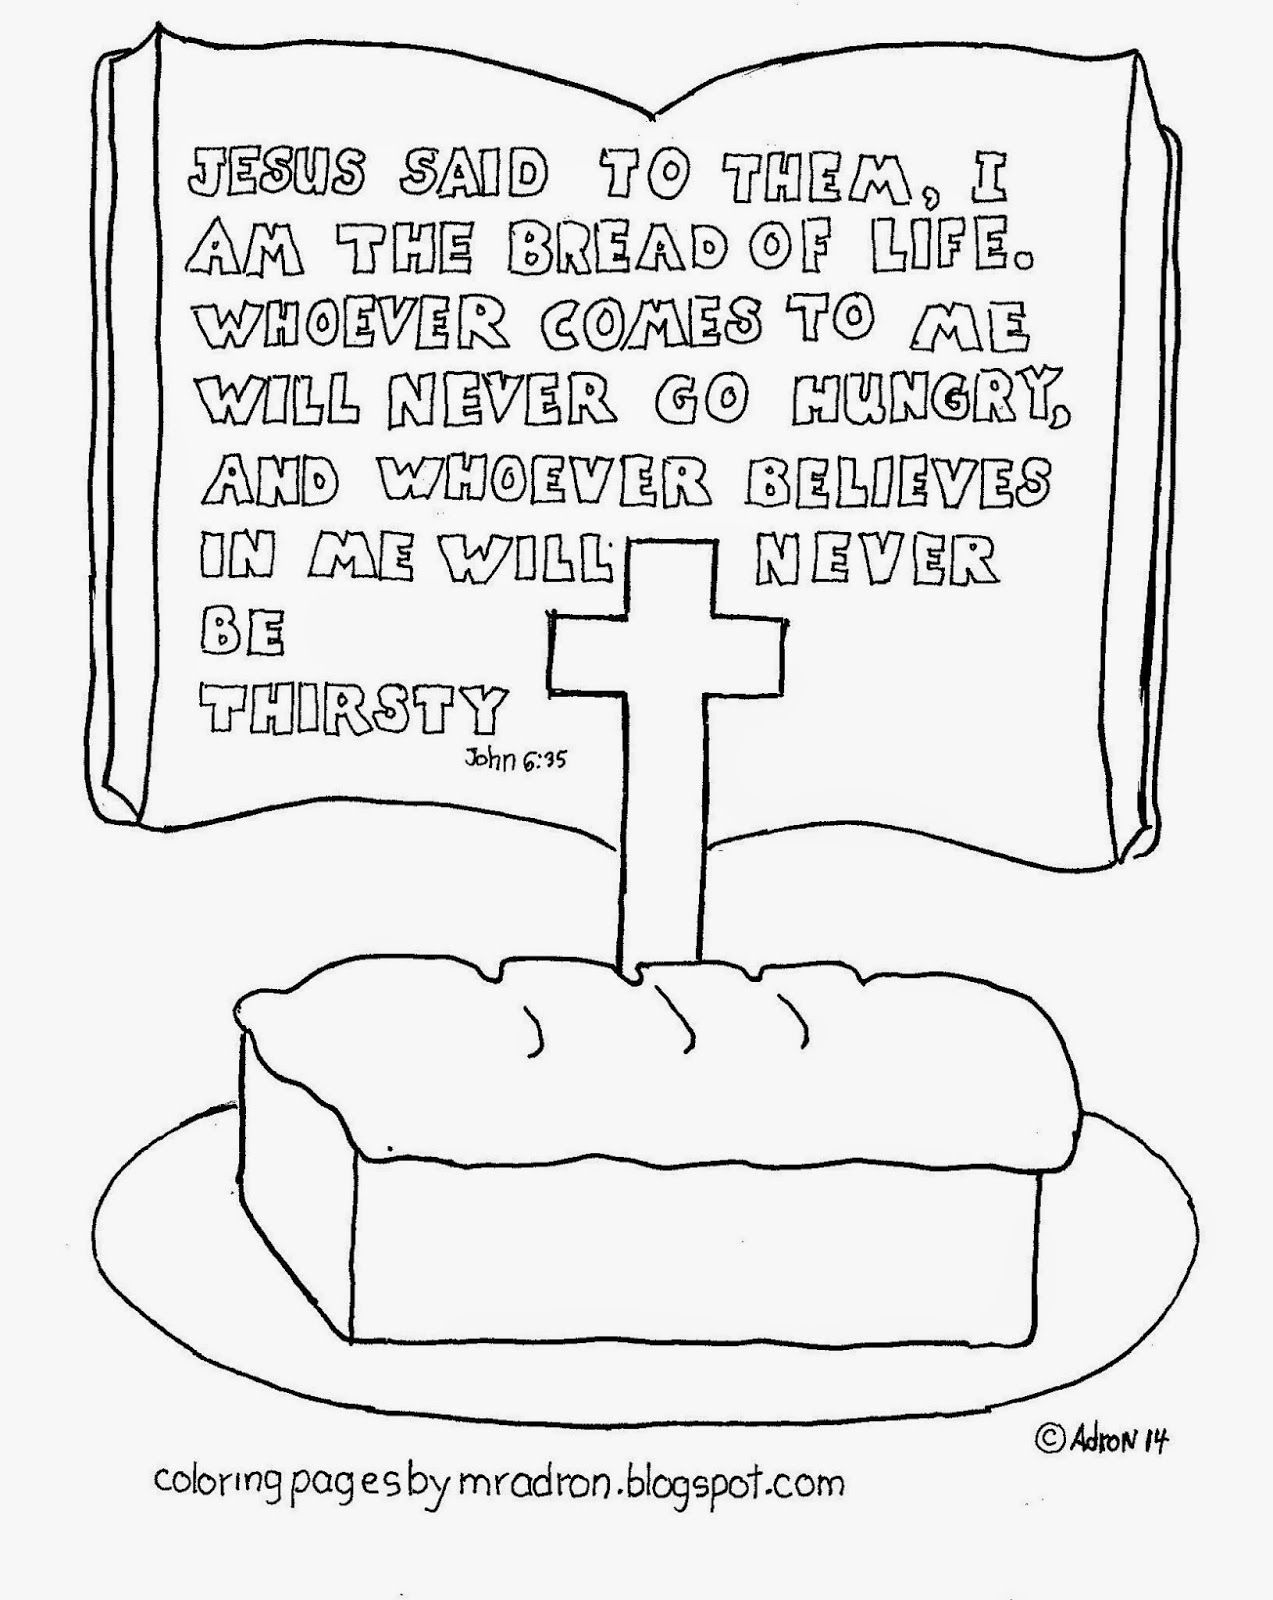 I Am The Bread Of Life Words Of Jesus Coloring Page See More At My Blog